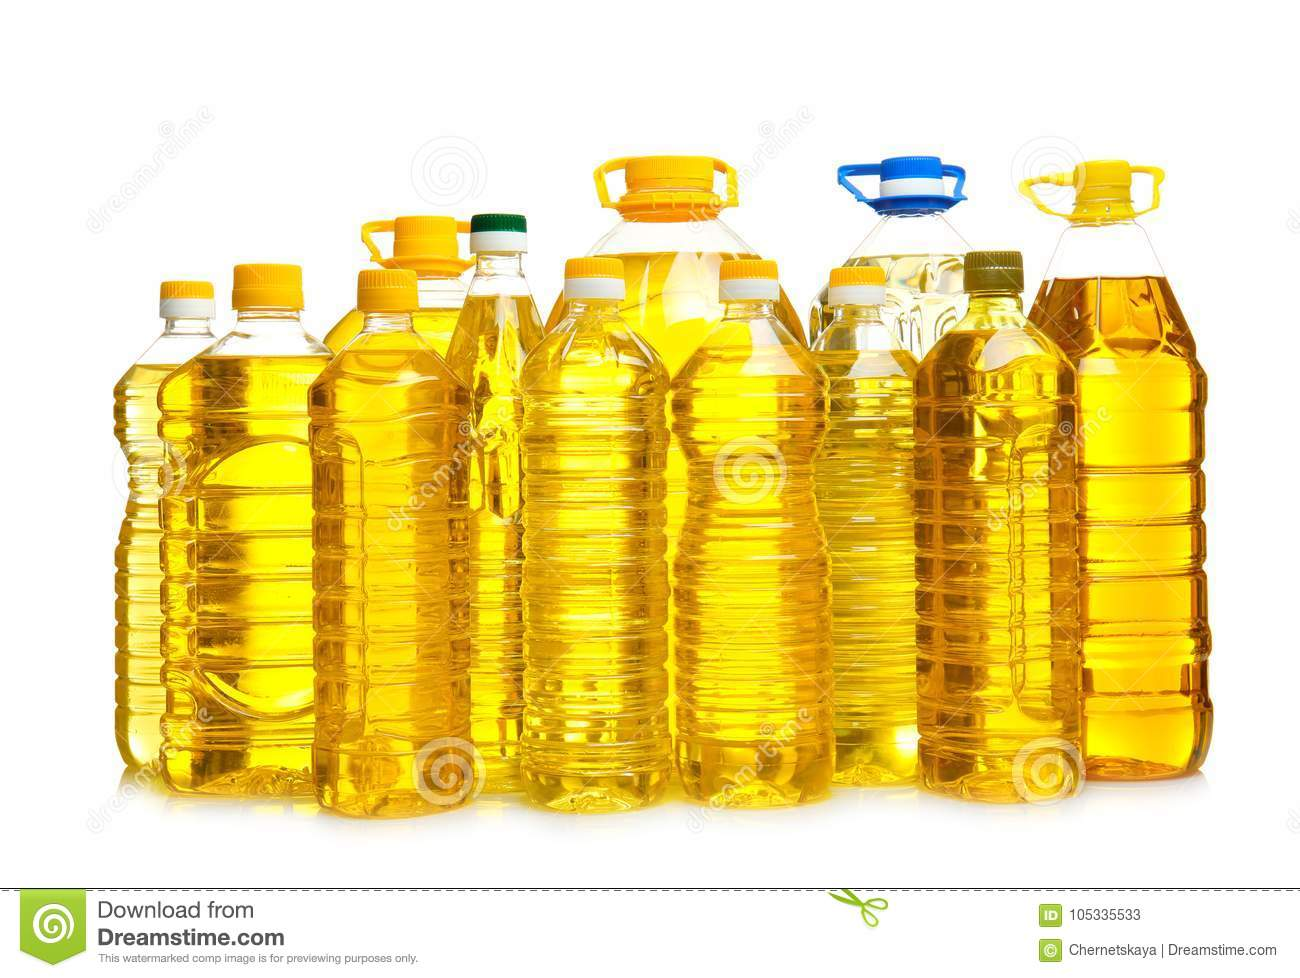 Bottles of cooking oil,